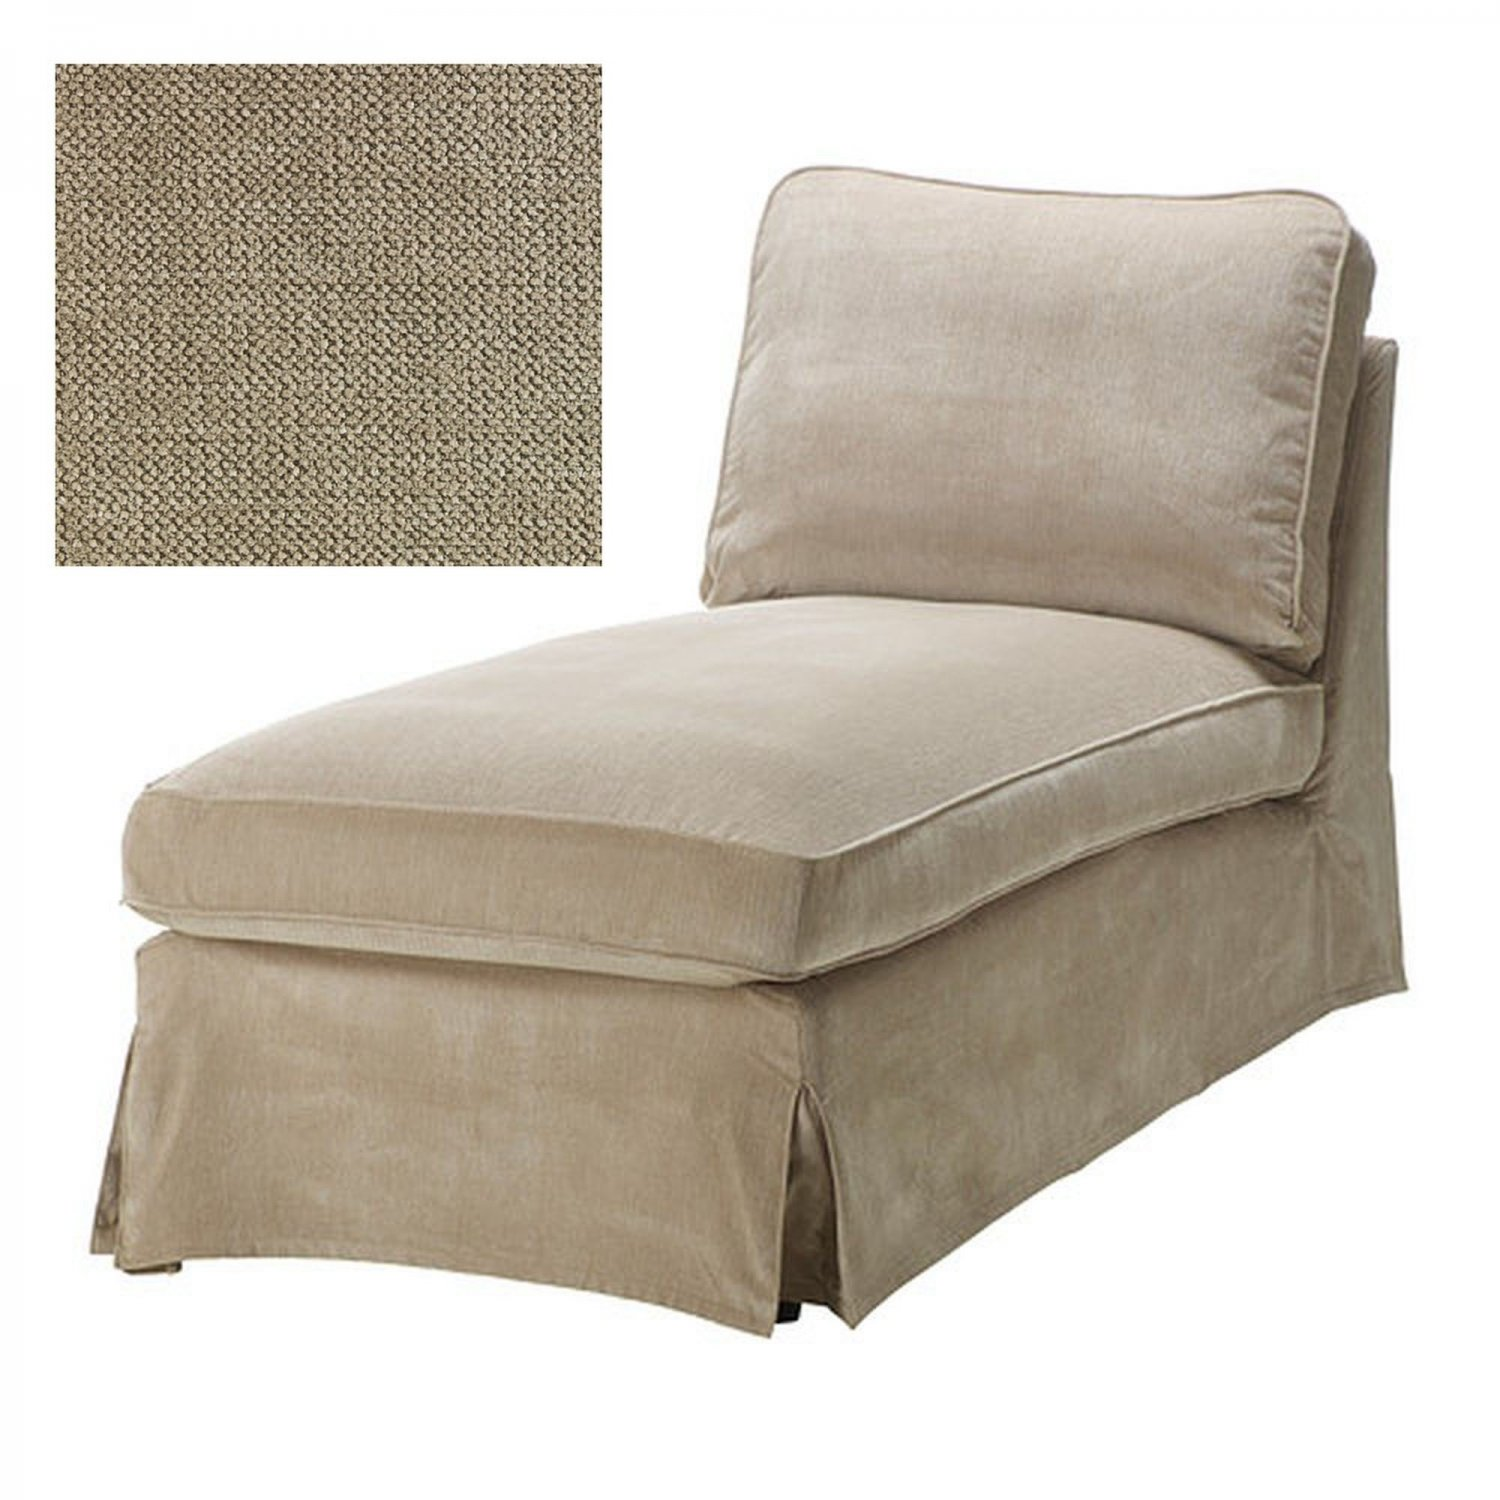 Ikea ektorp chaise longue cover slipcover vellinge beige for Chaise longue ikea